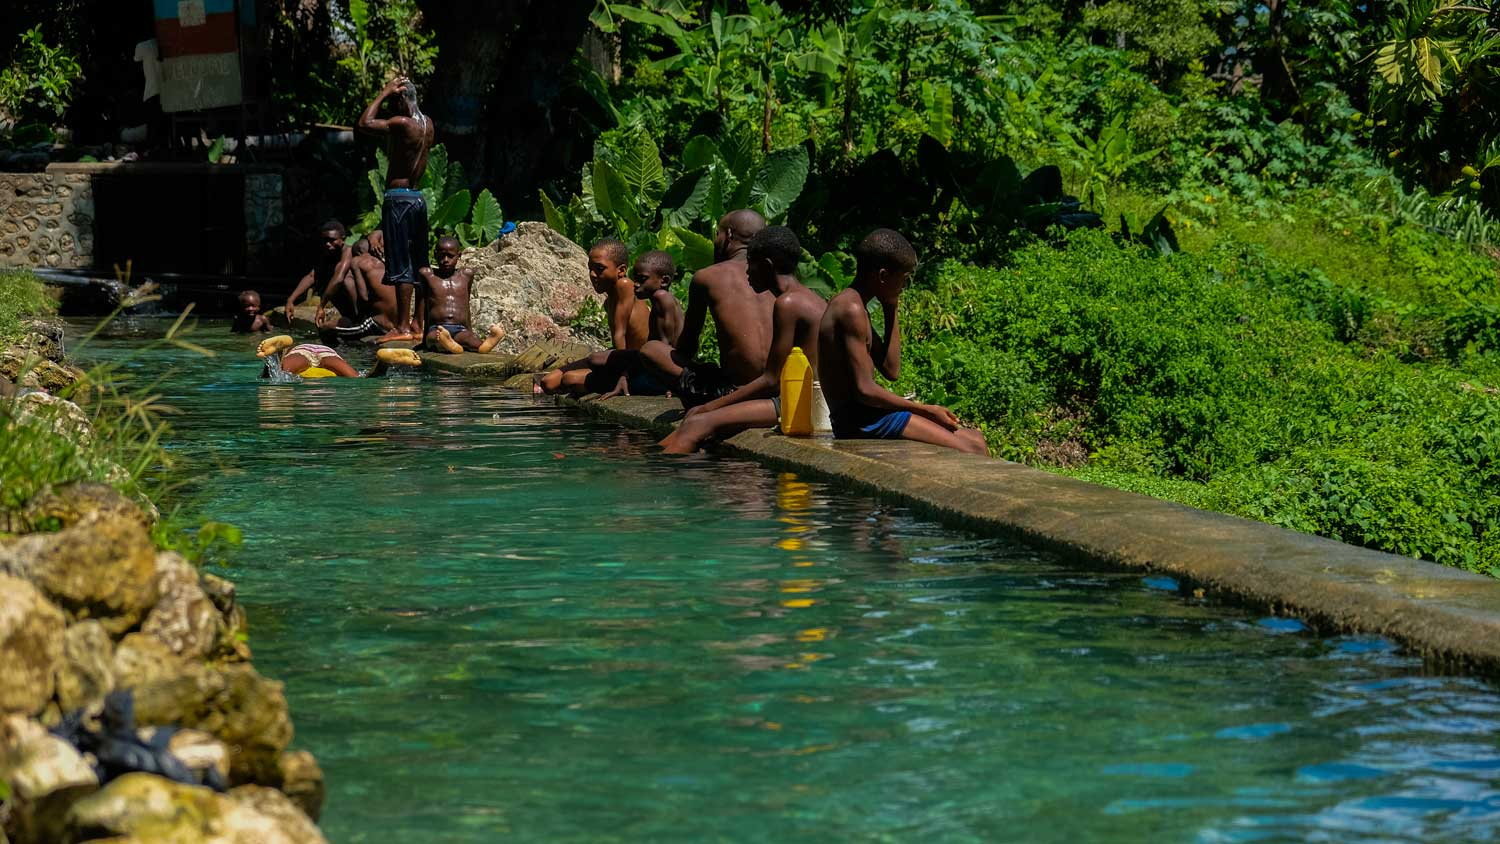 People swimming and sitting on the side of the water pools at Kay Piat, Montrouis, Haiti